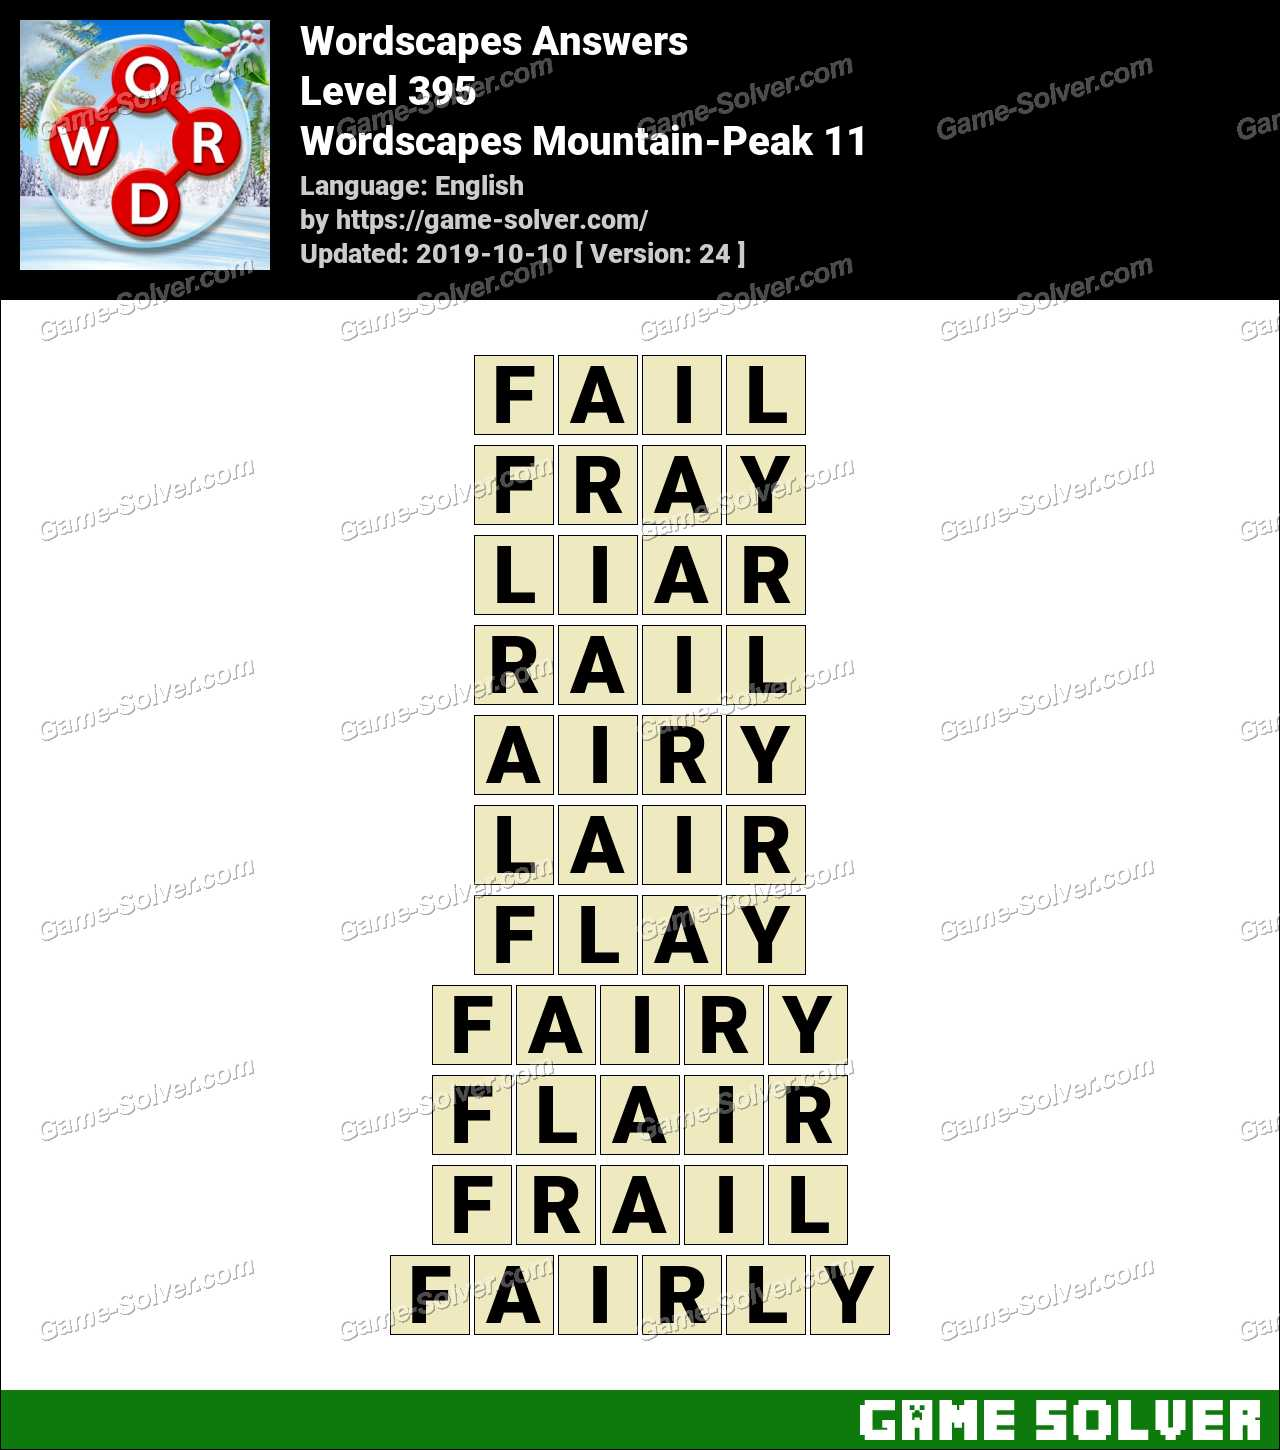 Wordscapes Mountain-Peak 11 Answers